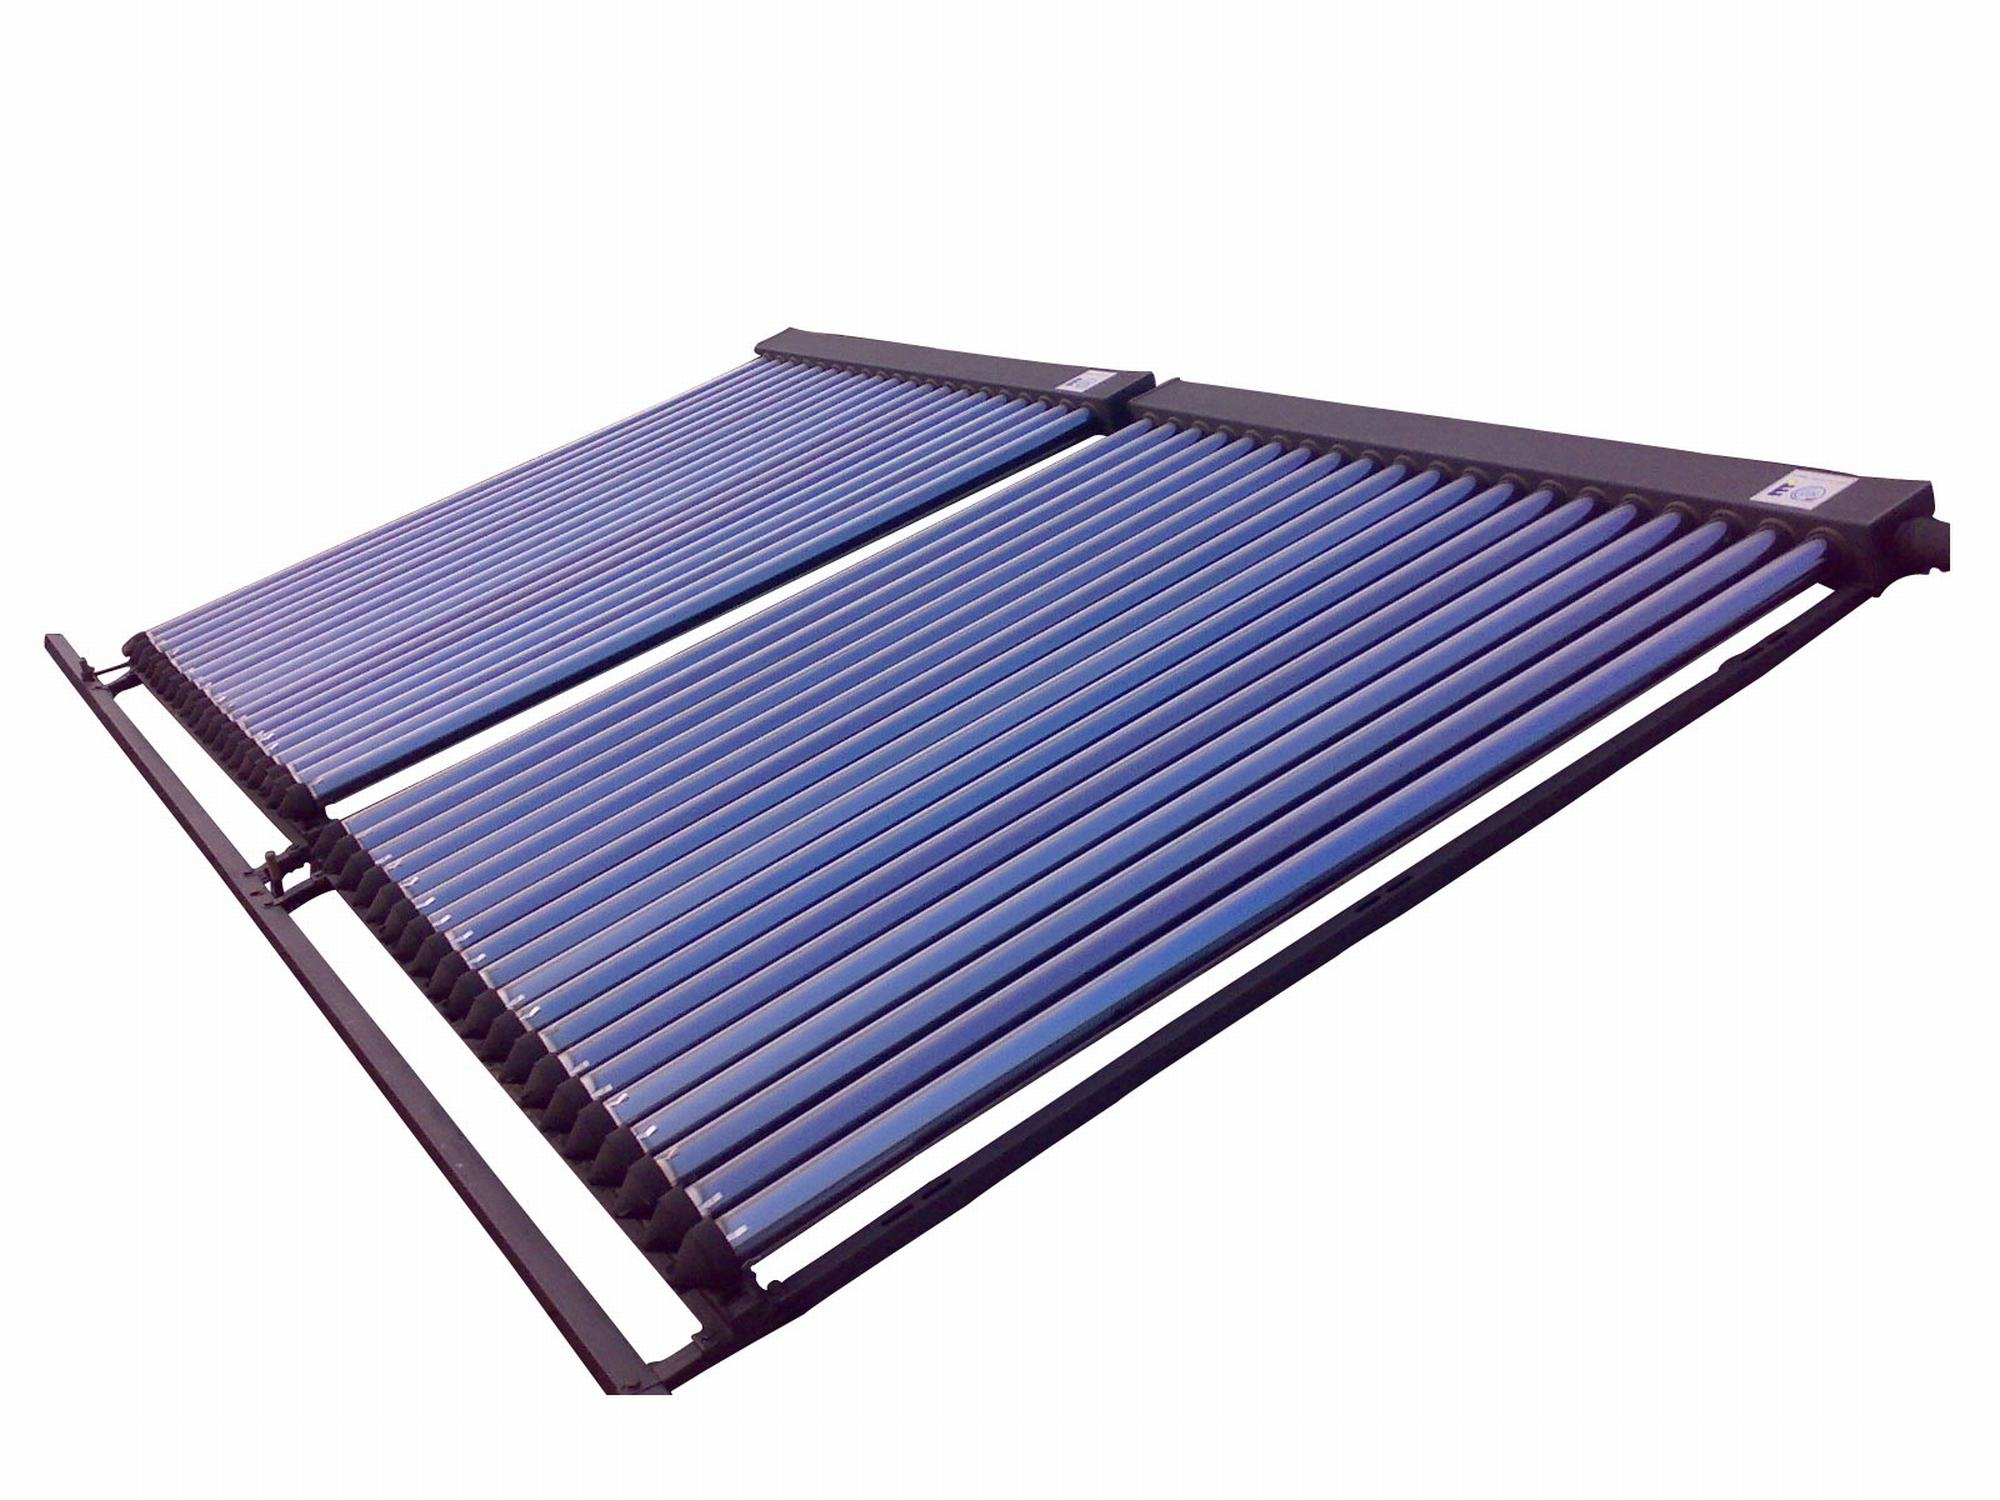 Solar Keymark Solar Collector (SPB-58/1800-30) Heat Pipe Collector Solar Keymark SRCC Certification